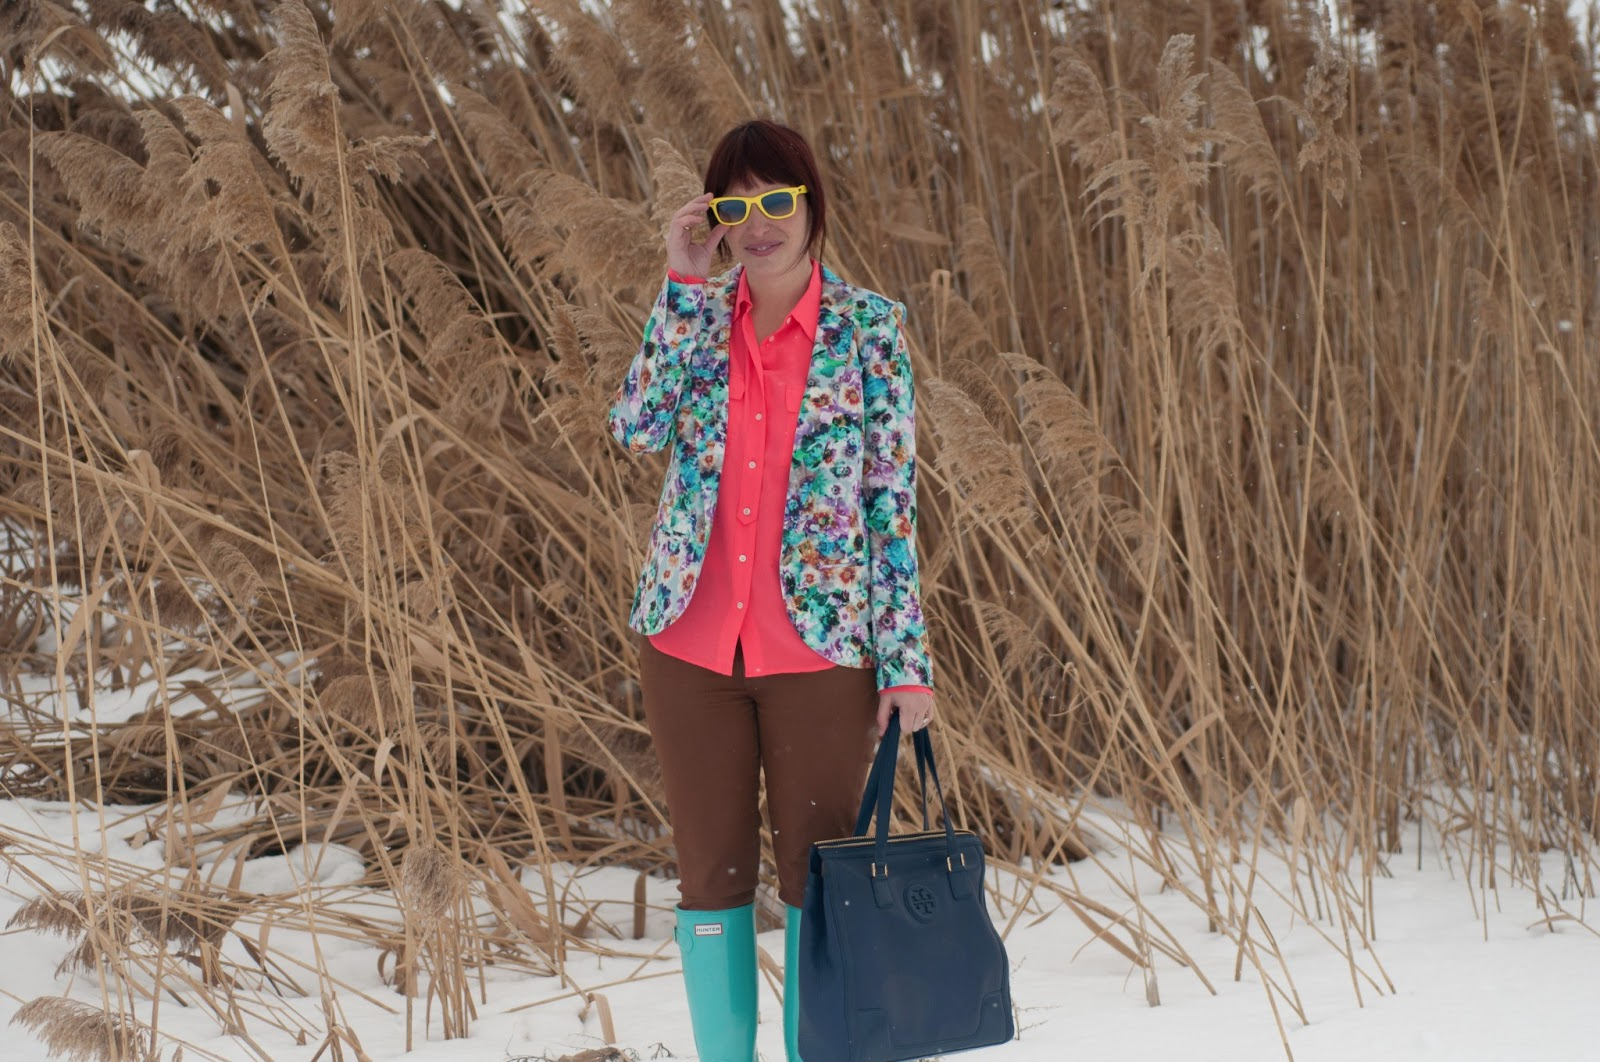 fashion blog, fashion blogger, mens fashion, mens style blog, layering, blazer, floral, floral blazer, blue, pink, teal, hot pink, floral print, floral clothing, nordstrom, jcrew, jcrew blouse, silk blouse, blouse, waxed jeans, waxed pants, citizens of humanity, hunter, hunter boots, rain boots, rain boot, teal hunter boot, blue hunter boots, glossy boots, boot, glossy hunter boot, tory burch, leather purse, navy purse, leather purse, navy leather, ray ban, ray bans, wayfer, wayfer ray ban, earrings, bow earrings, gold earrings, womens style, fashion, style, fashion blogger, womens fashion blogger, neon yellow, snow, reeds, personal style, outfit post, style post, utah, utah fashion blogger, the great outdoors, snow